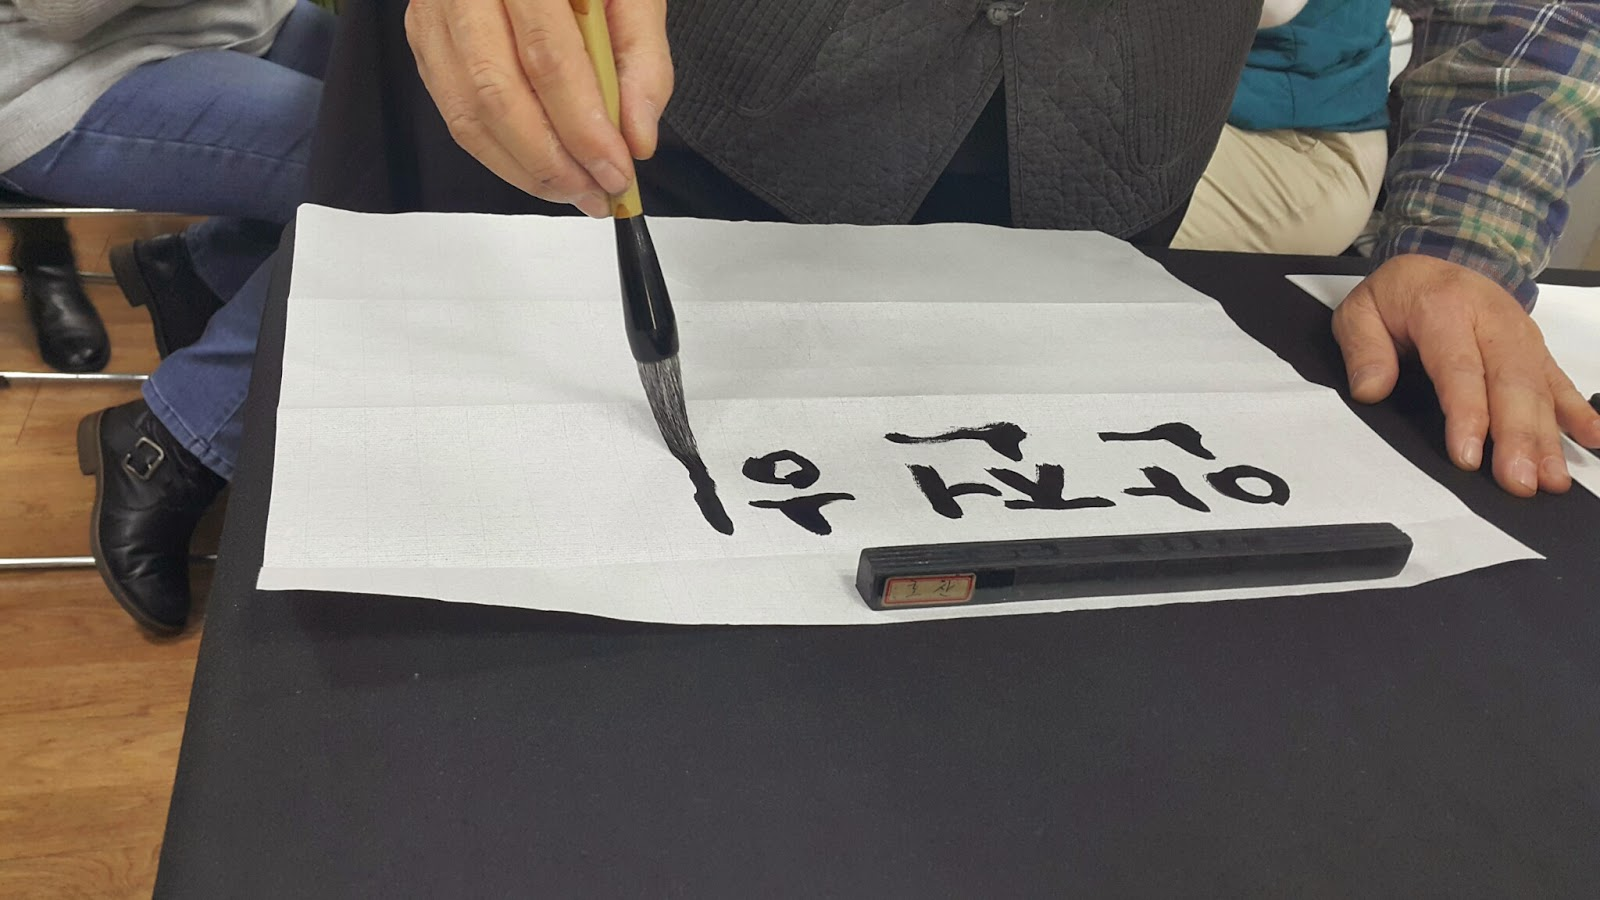 The bold, normal style of Korean Calligraphy